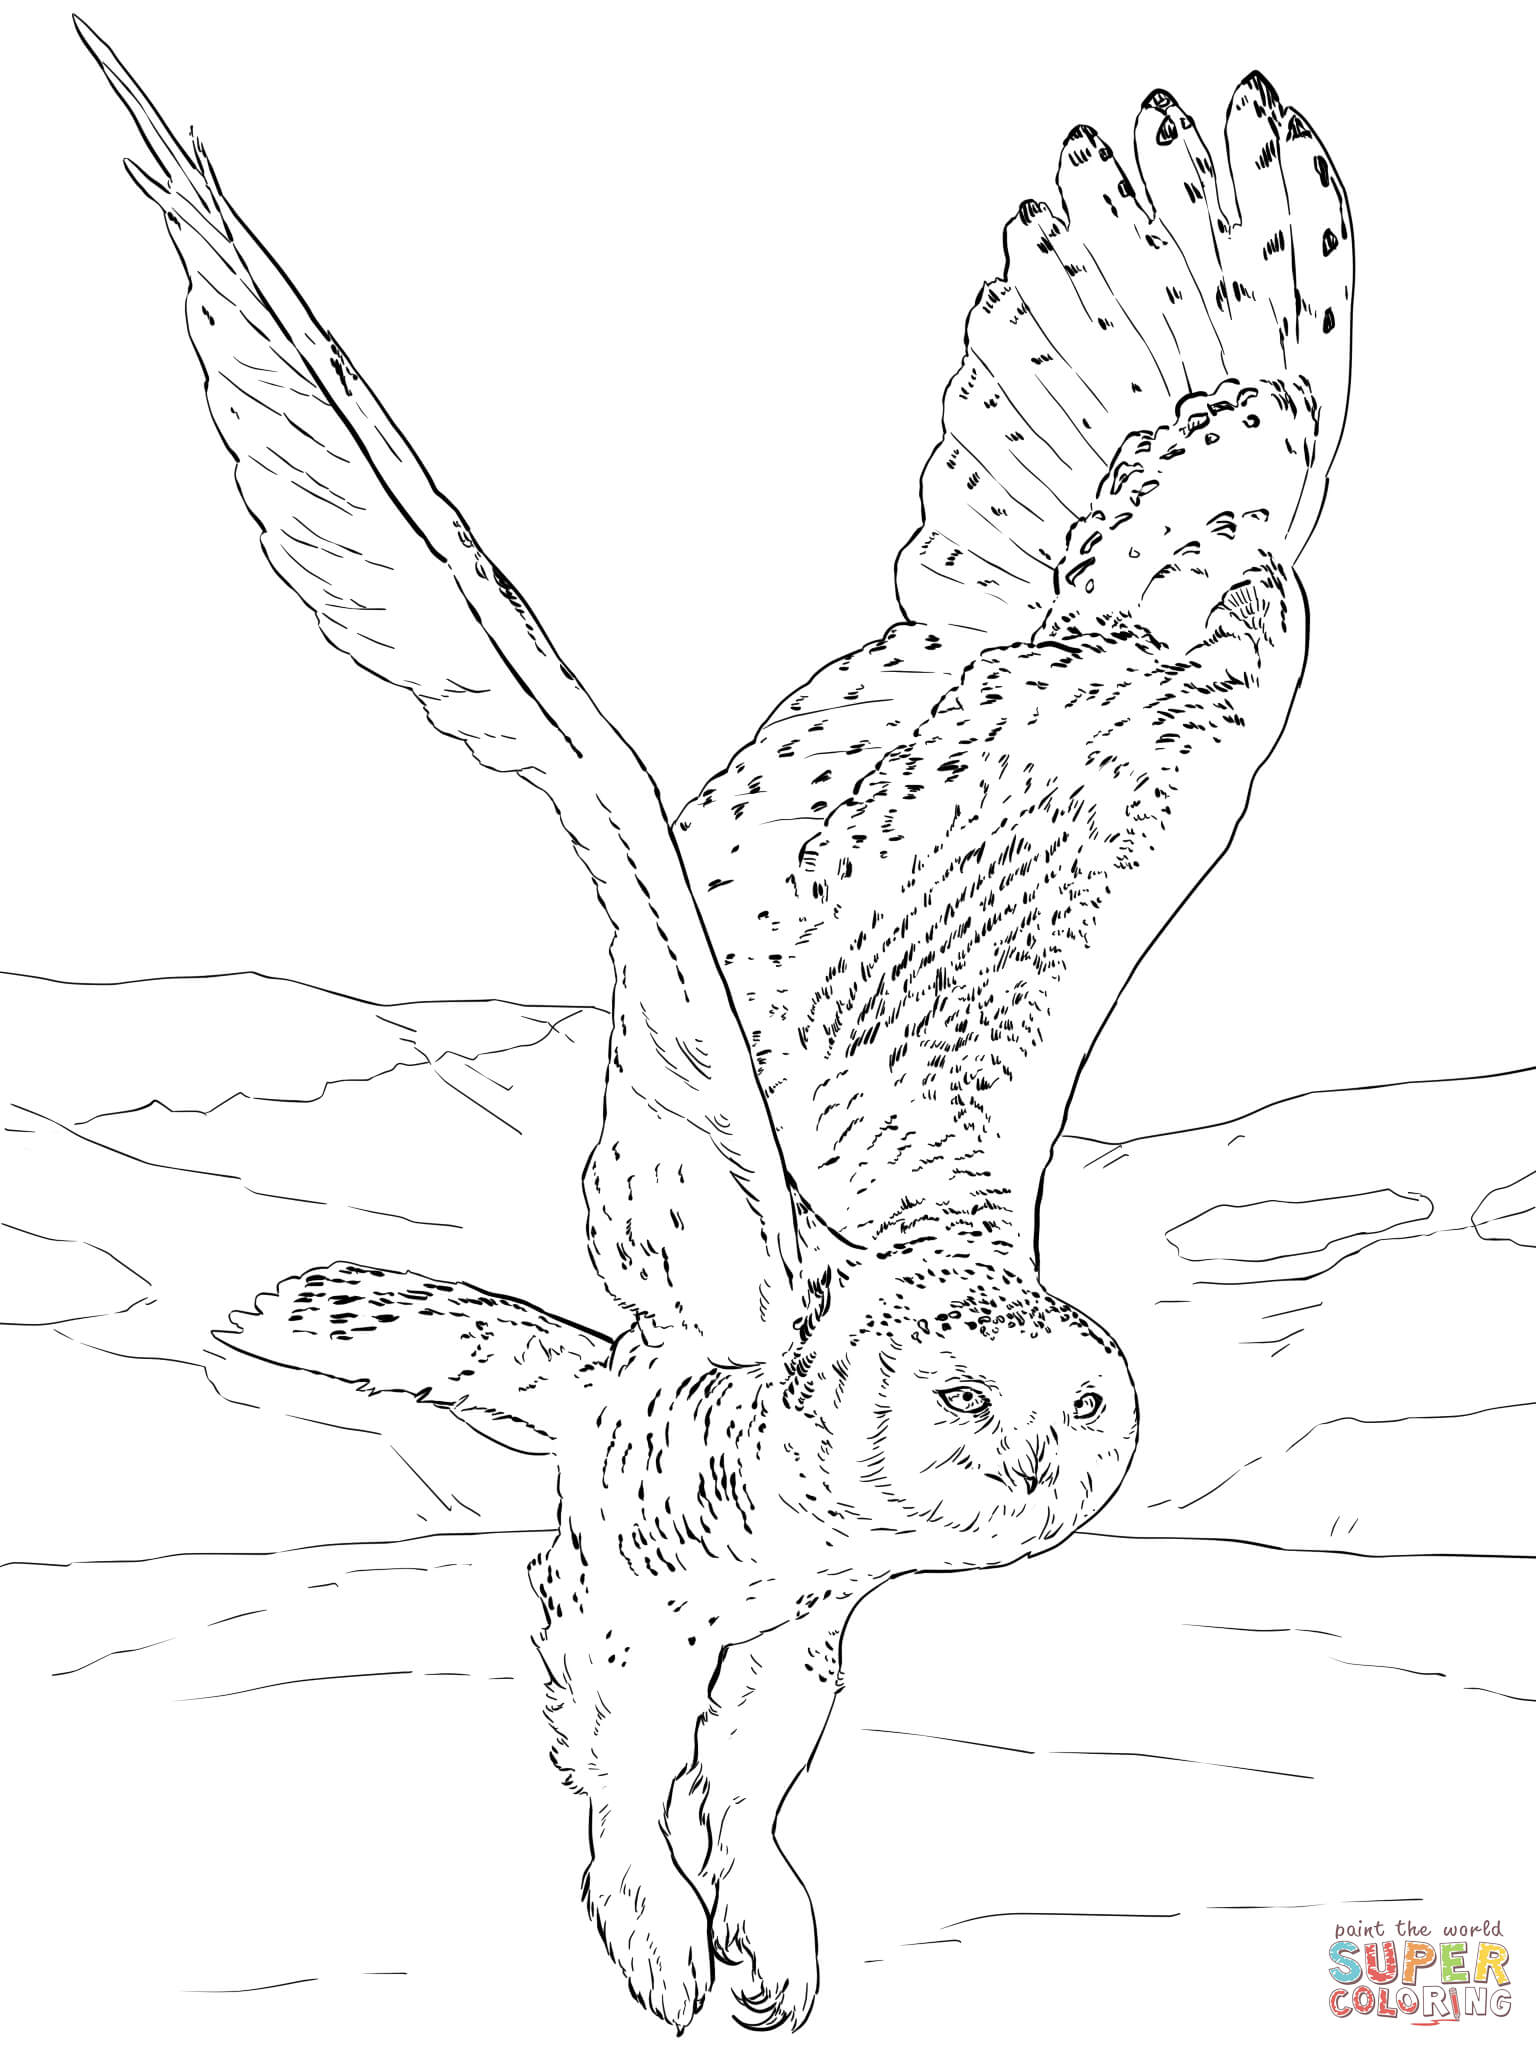 Eagle-owl coloring #2, Download drawings